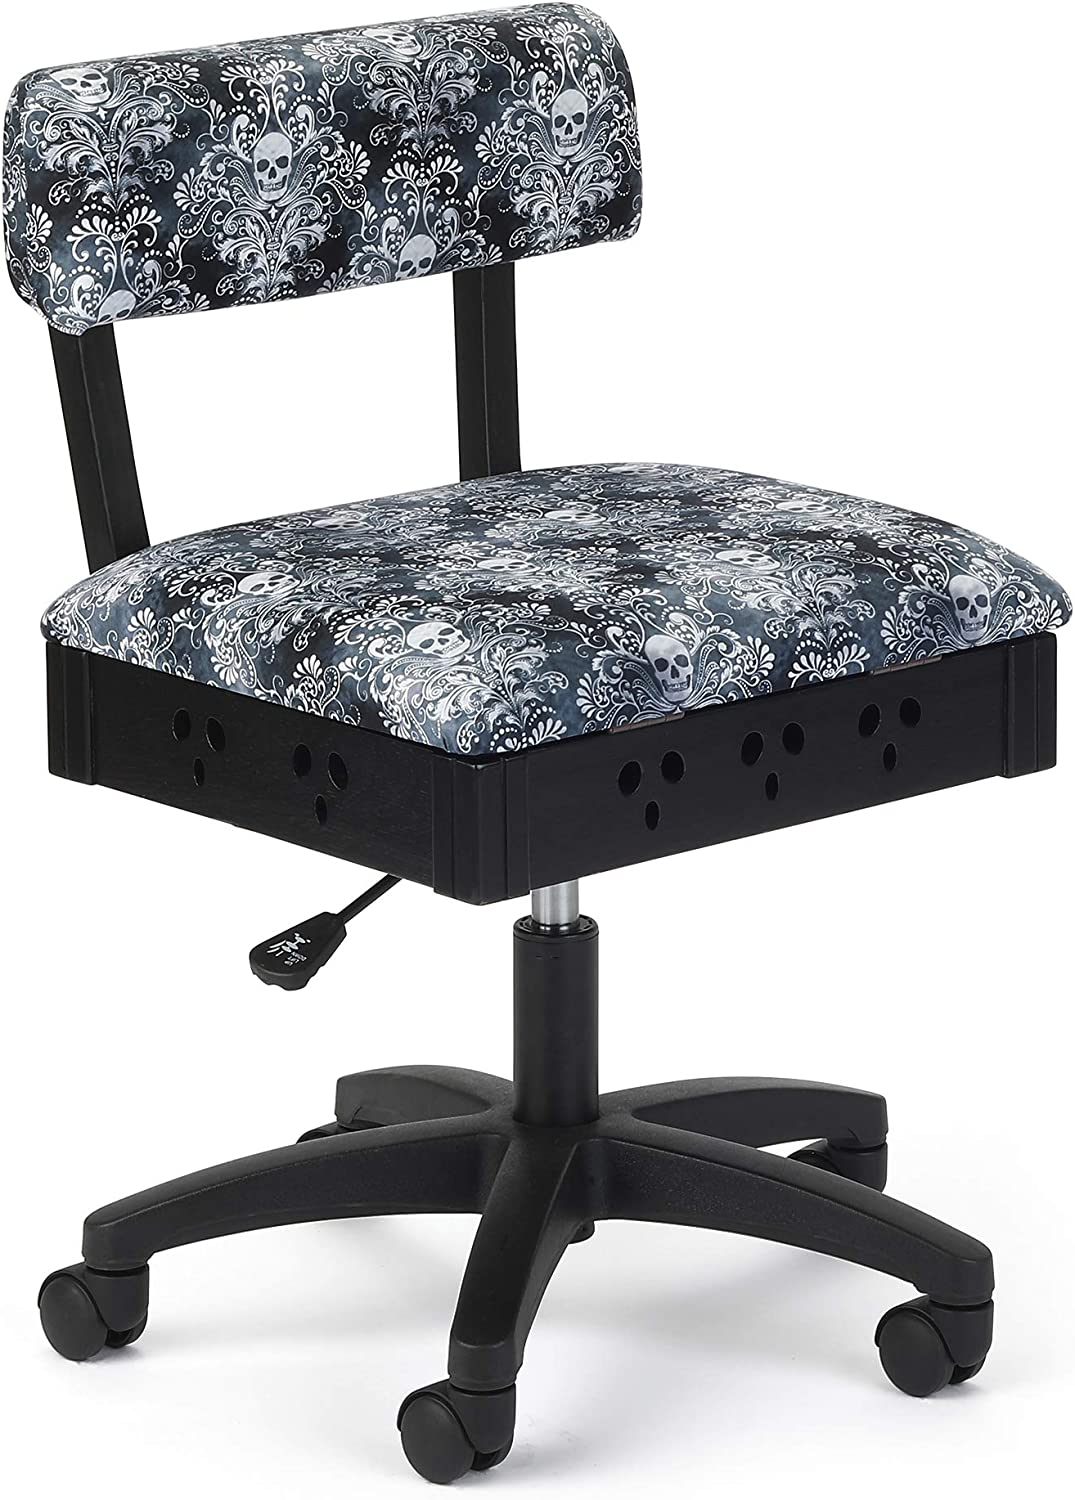 Arrow Adjustable Height Hydraulic Sewing and Craft Chair Wicked Cosplay Upholstery